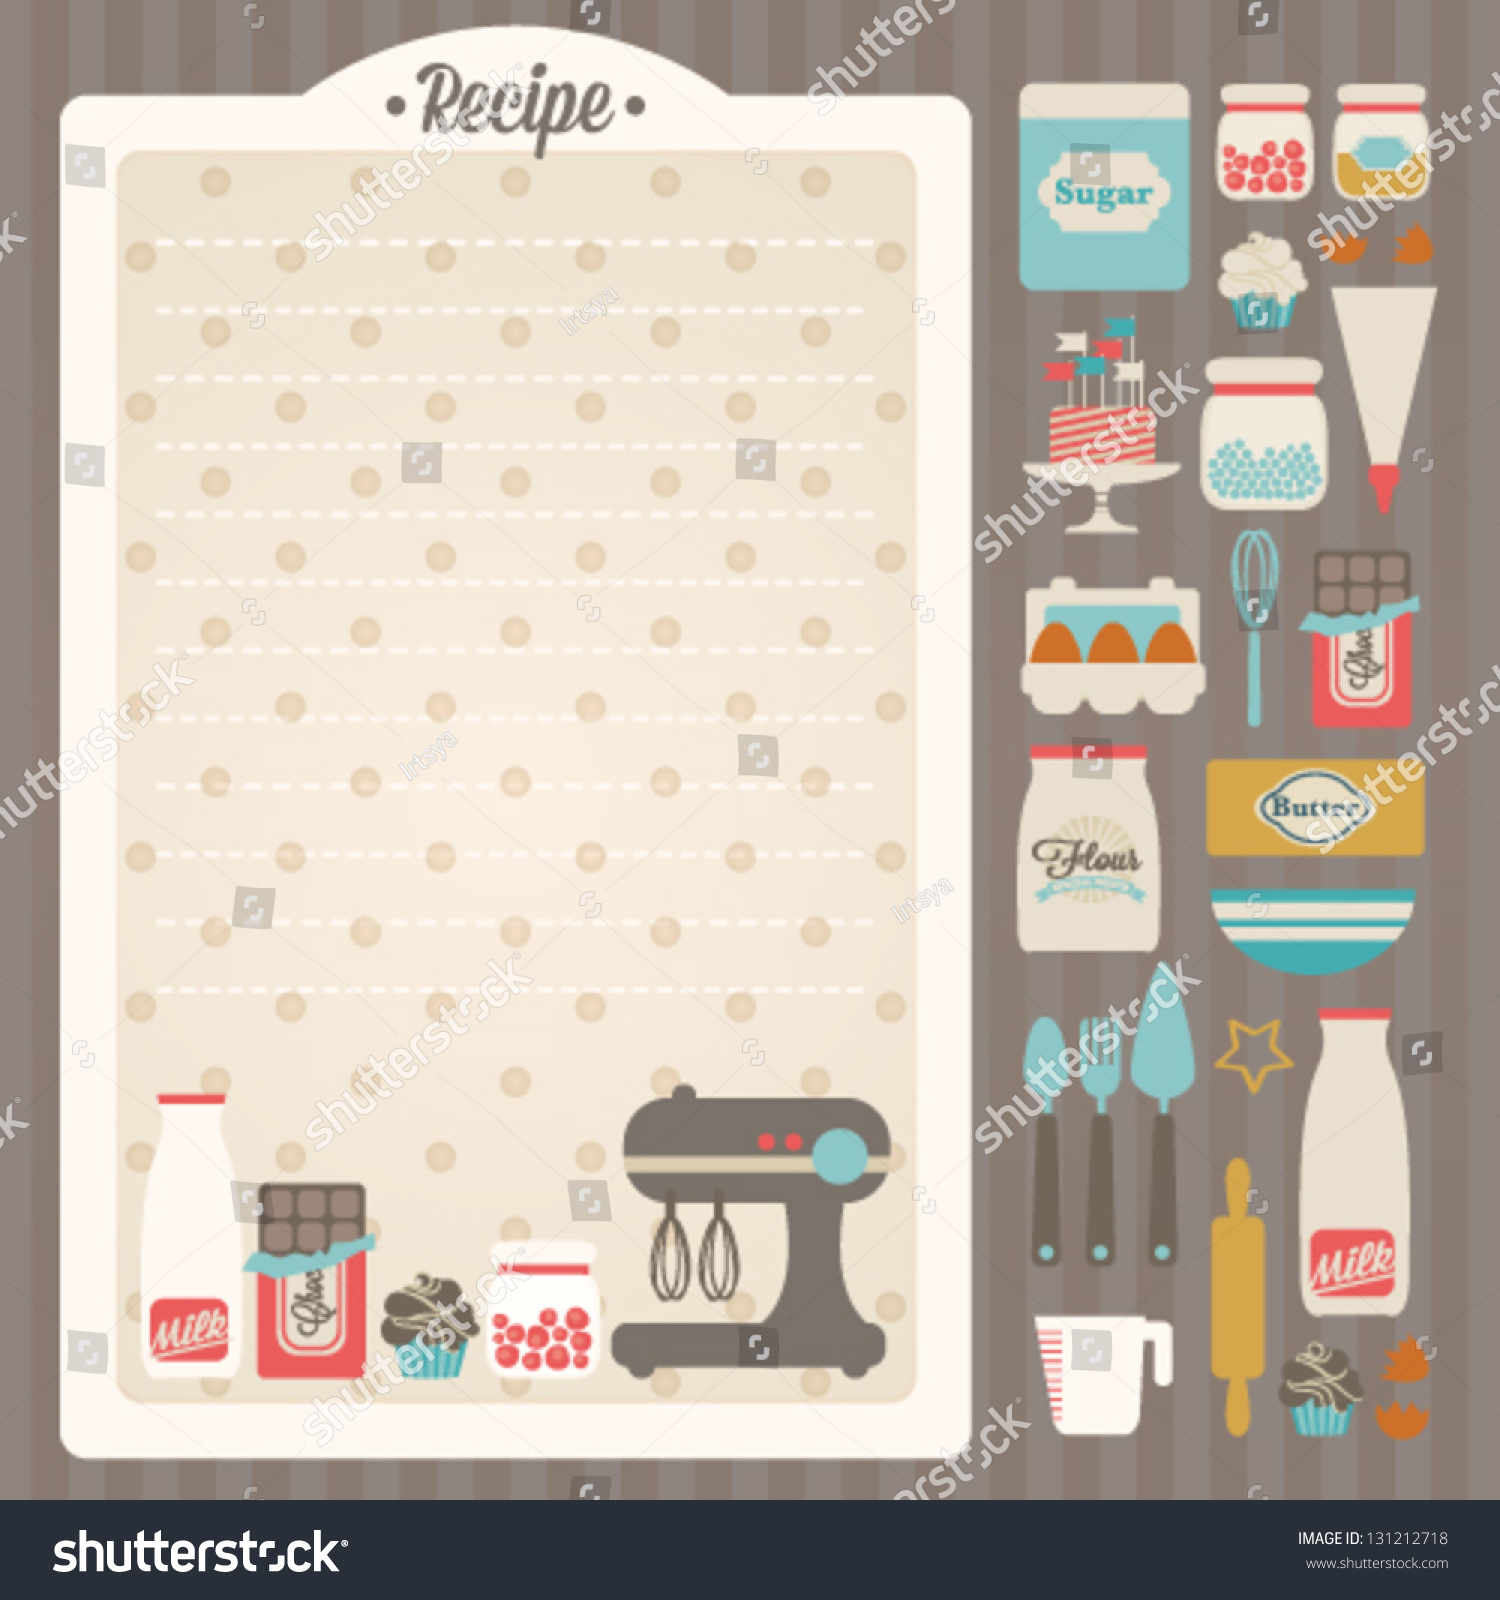 Sweet Recipe Vector Card Template Kitchen Stock Vector